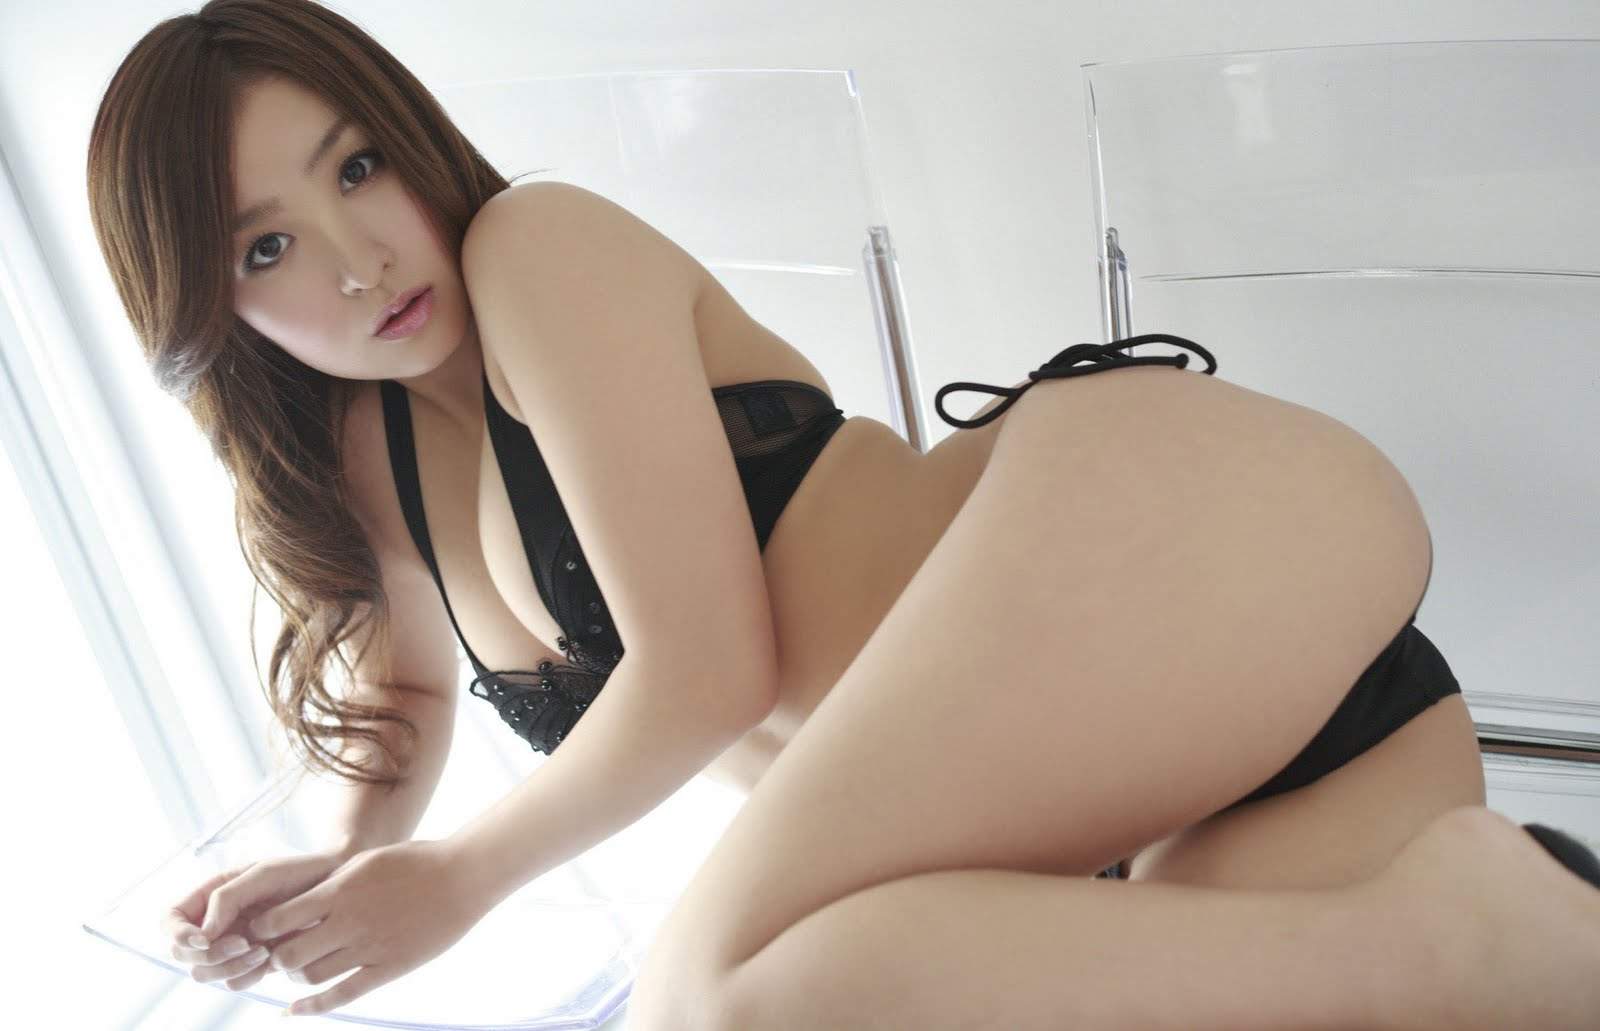 Top Model 2011 Aya Kiguchi Cute Bikini Idol